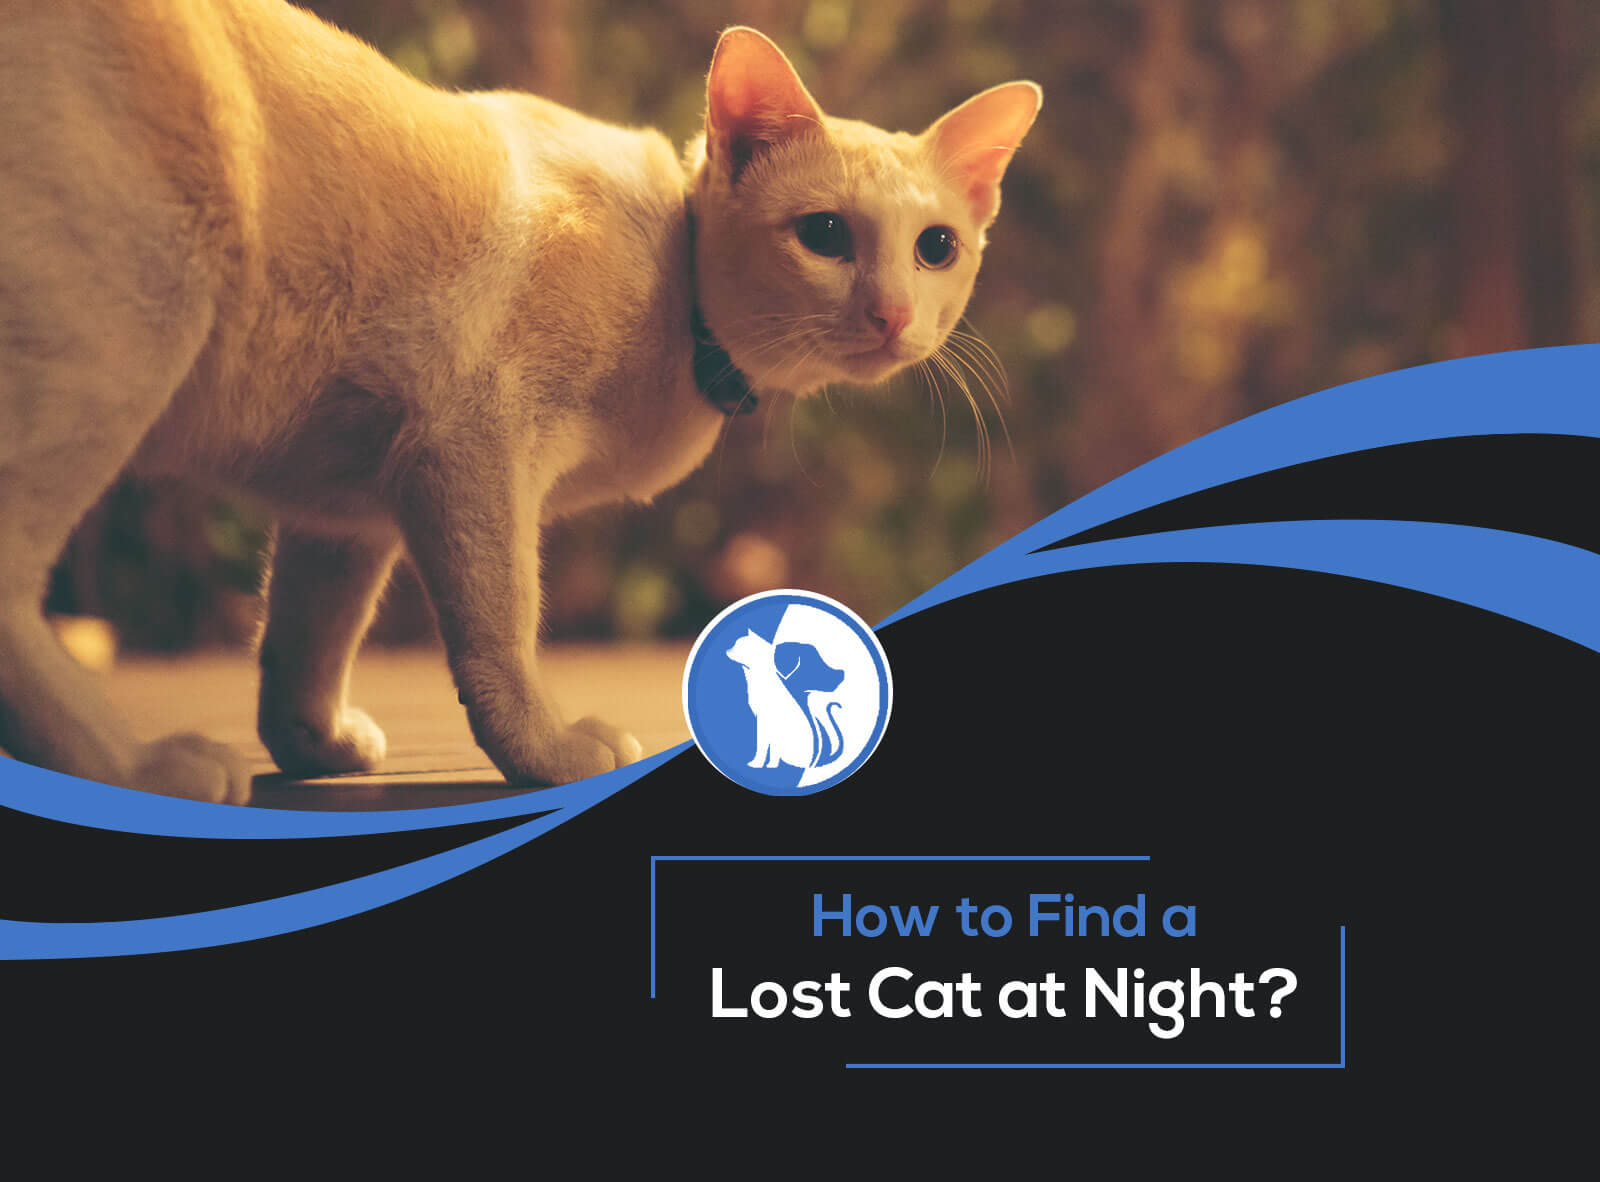 How to Find a Lost Cat at Night?